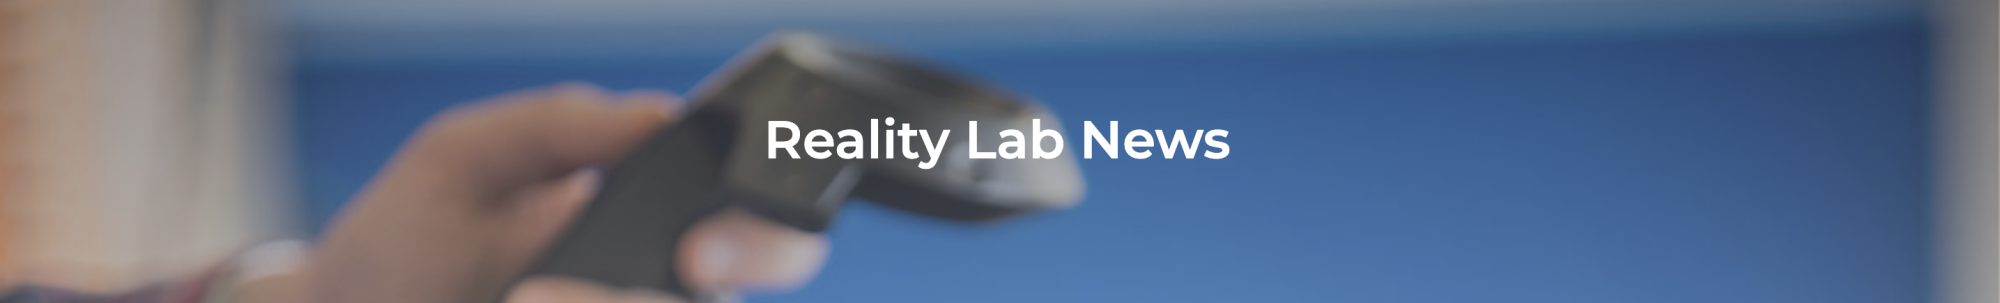 Reality Lab